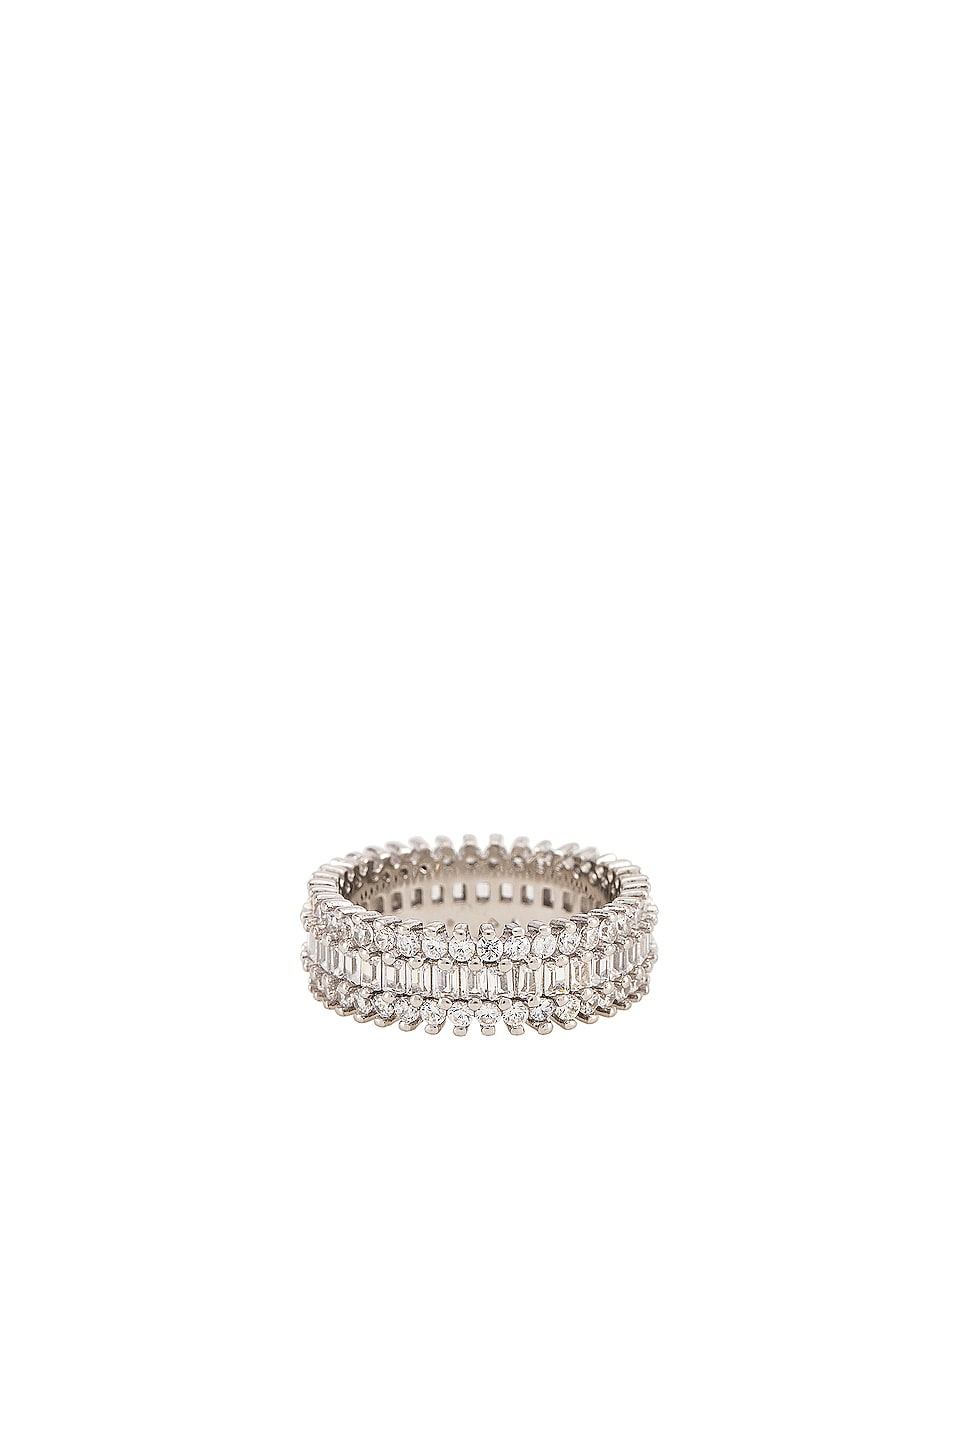 The M Jewelers NY The Three Row Eternity Band in Silver